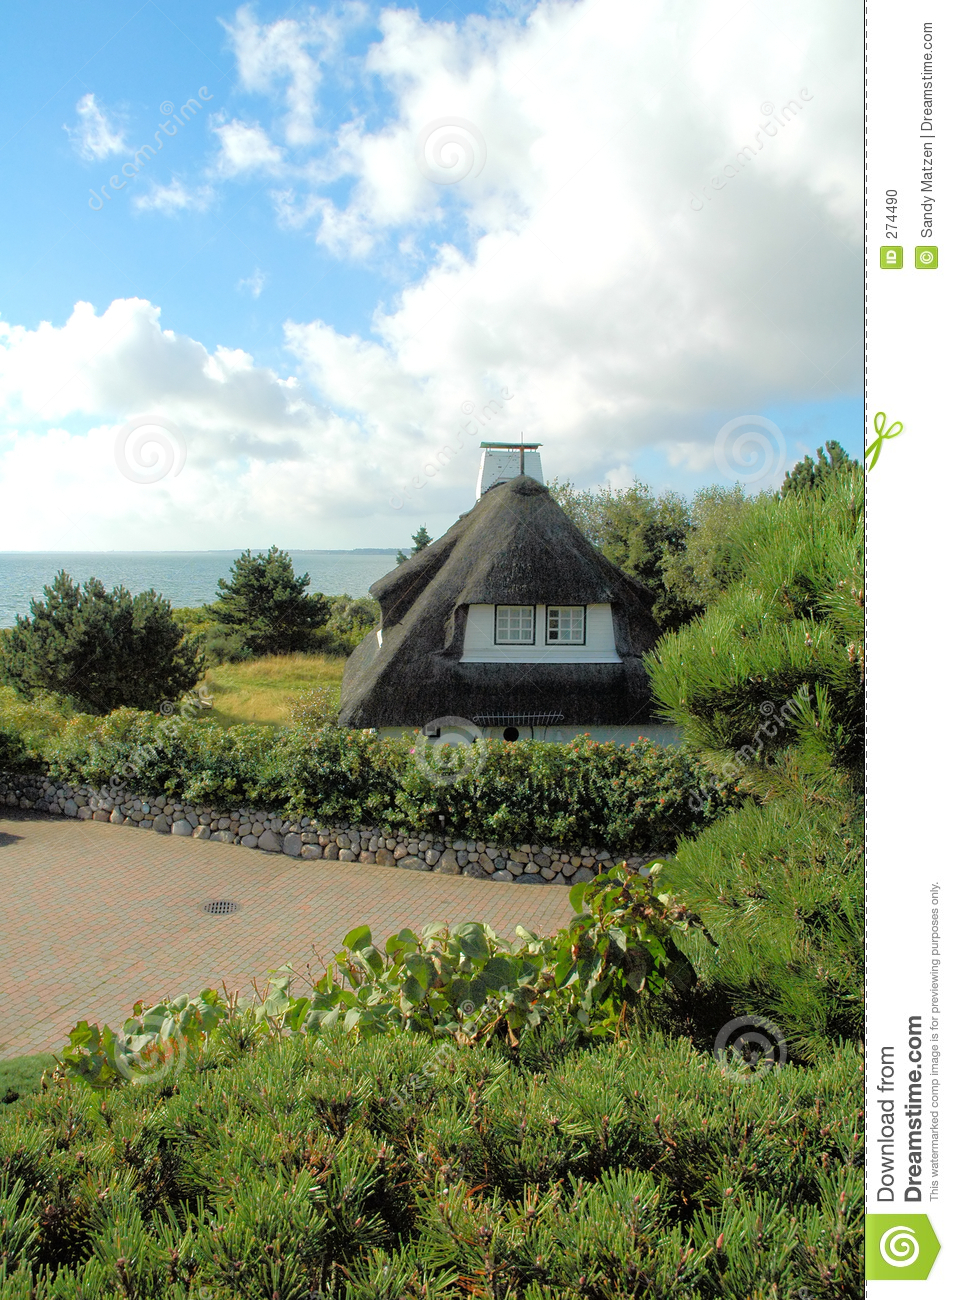 Thatched roof house 1